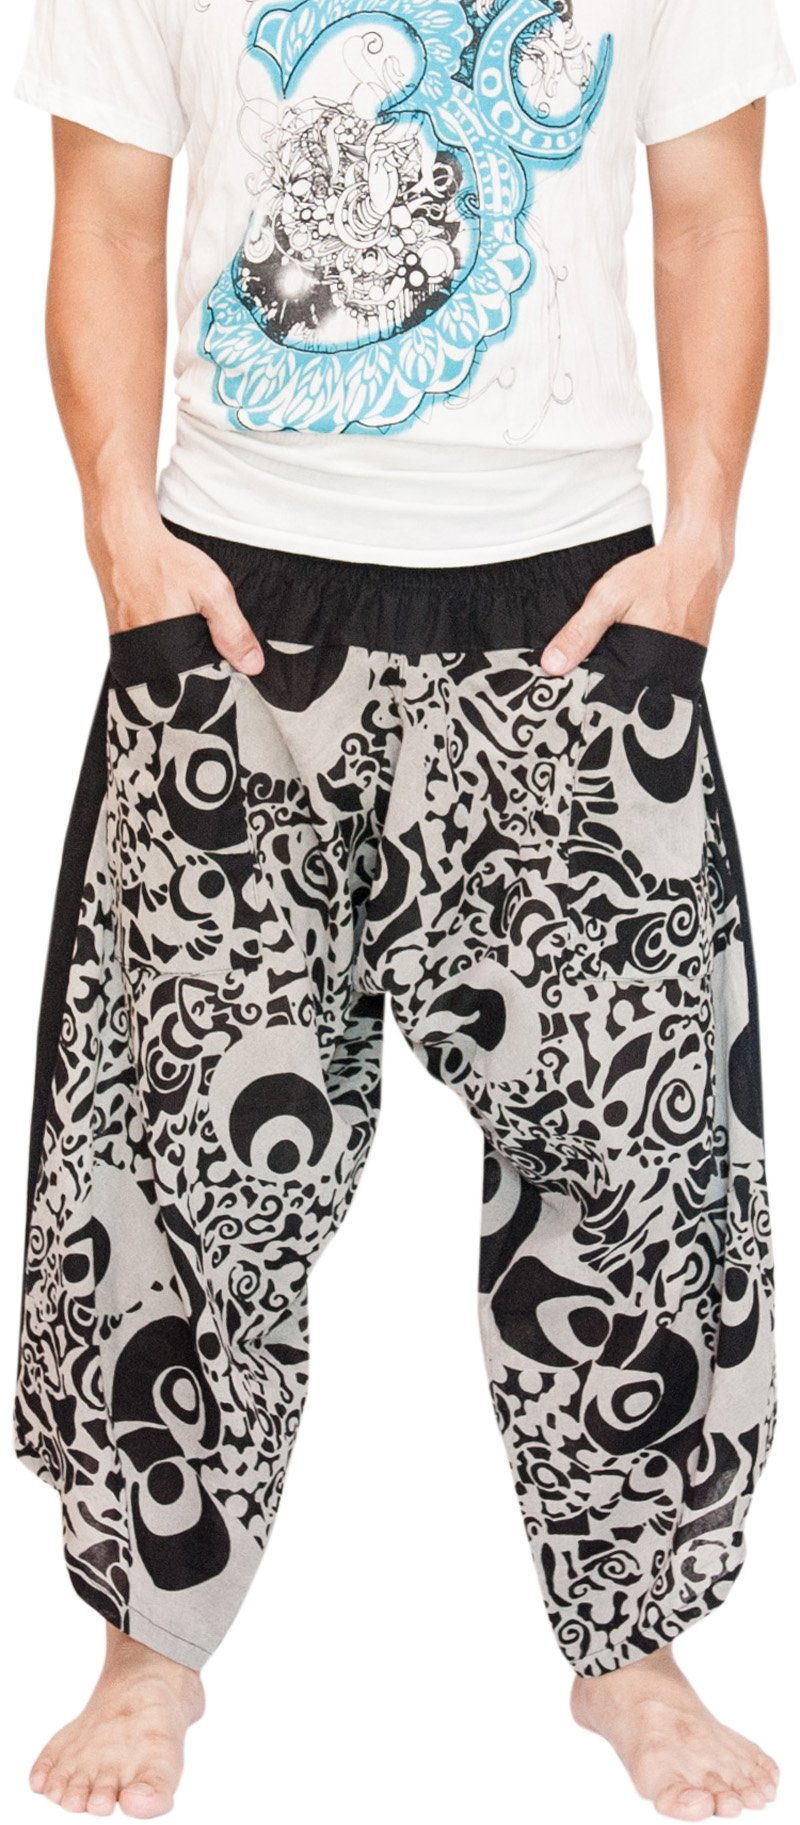 BohoHill Ninja Samurai Harem Pants Unisex Active Trousers Haka Tribal Black by BohoHill